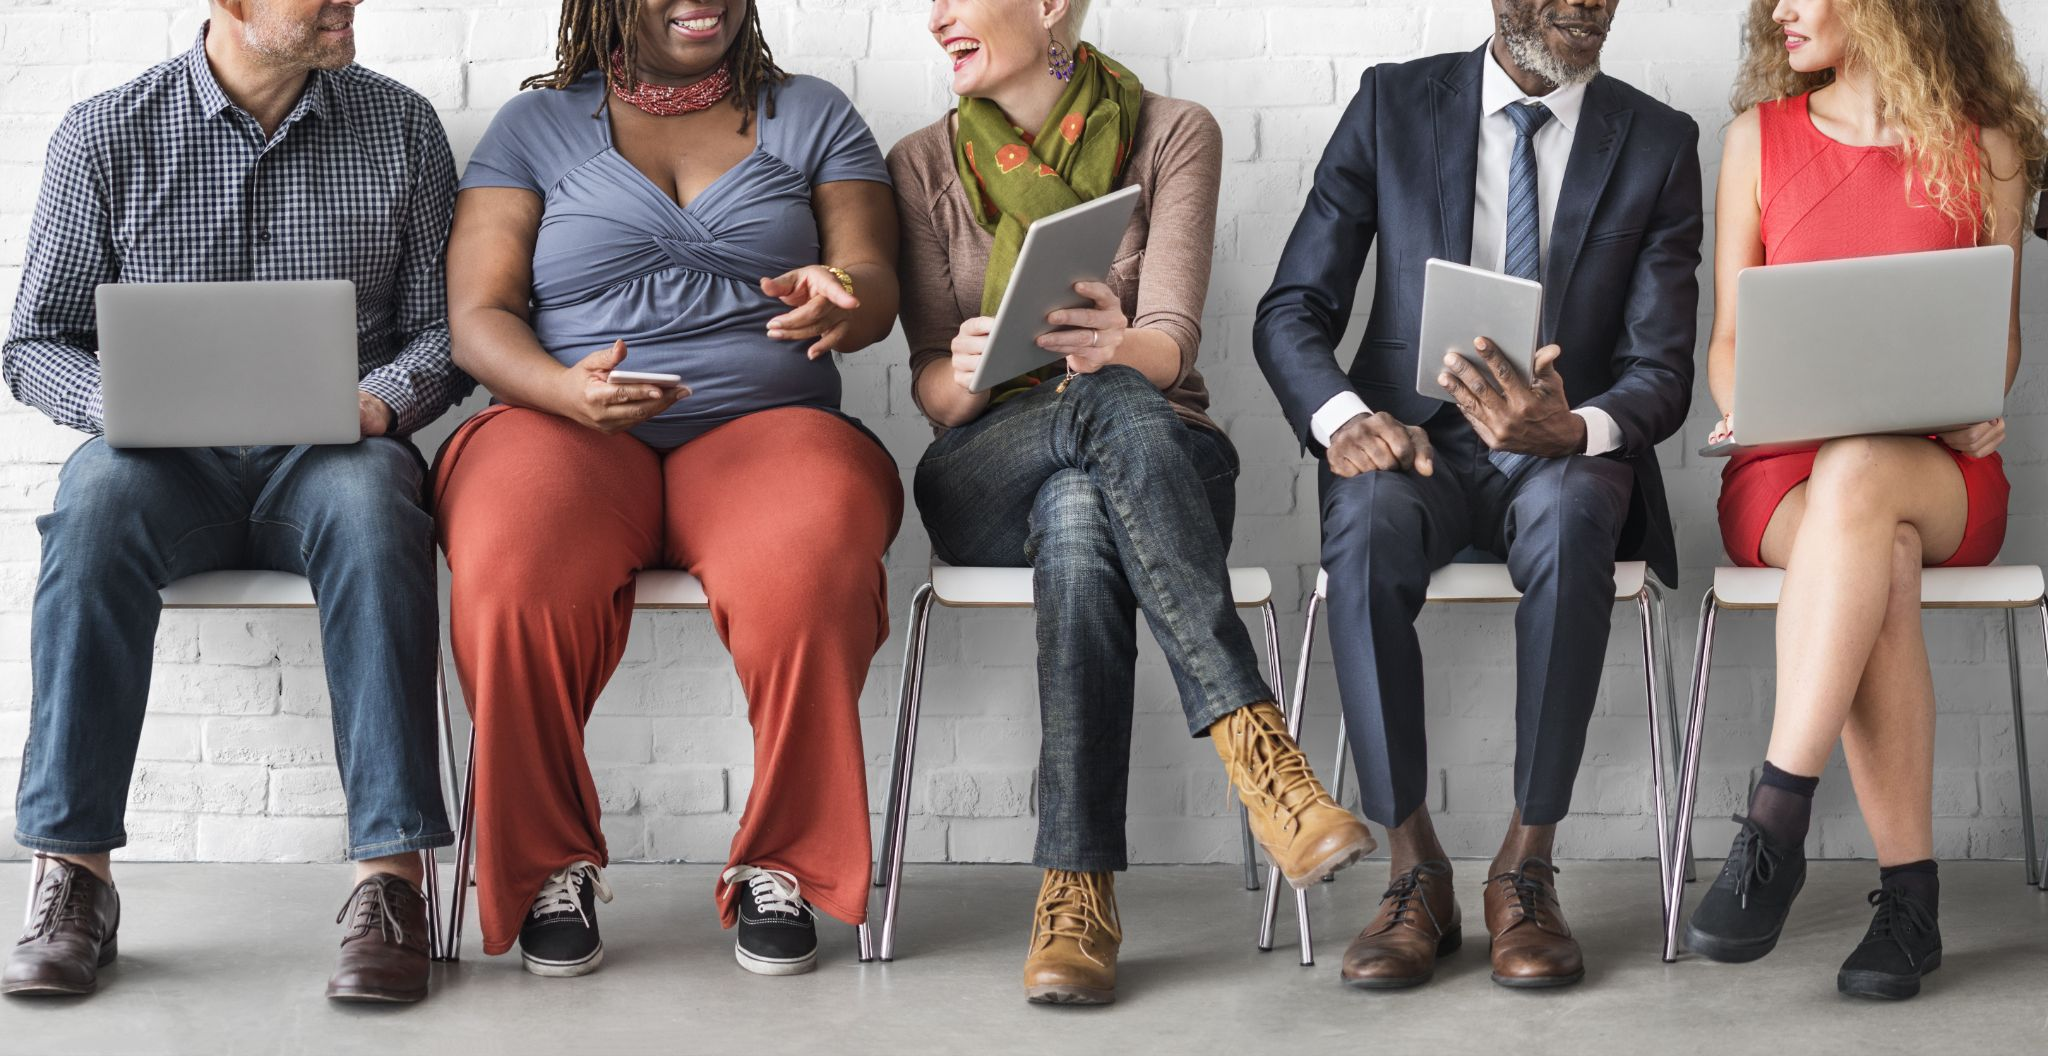 Group of diverse people sitting on chair looking at different devices in their hands